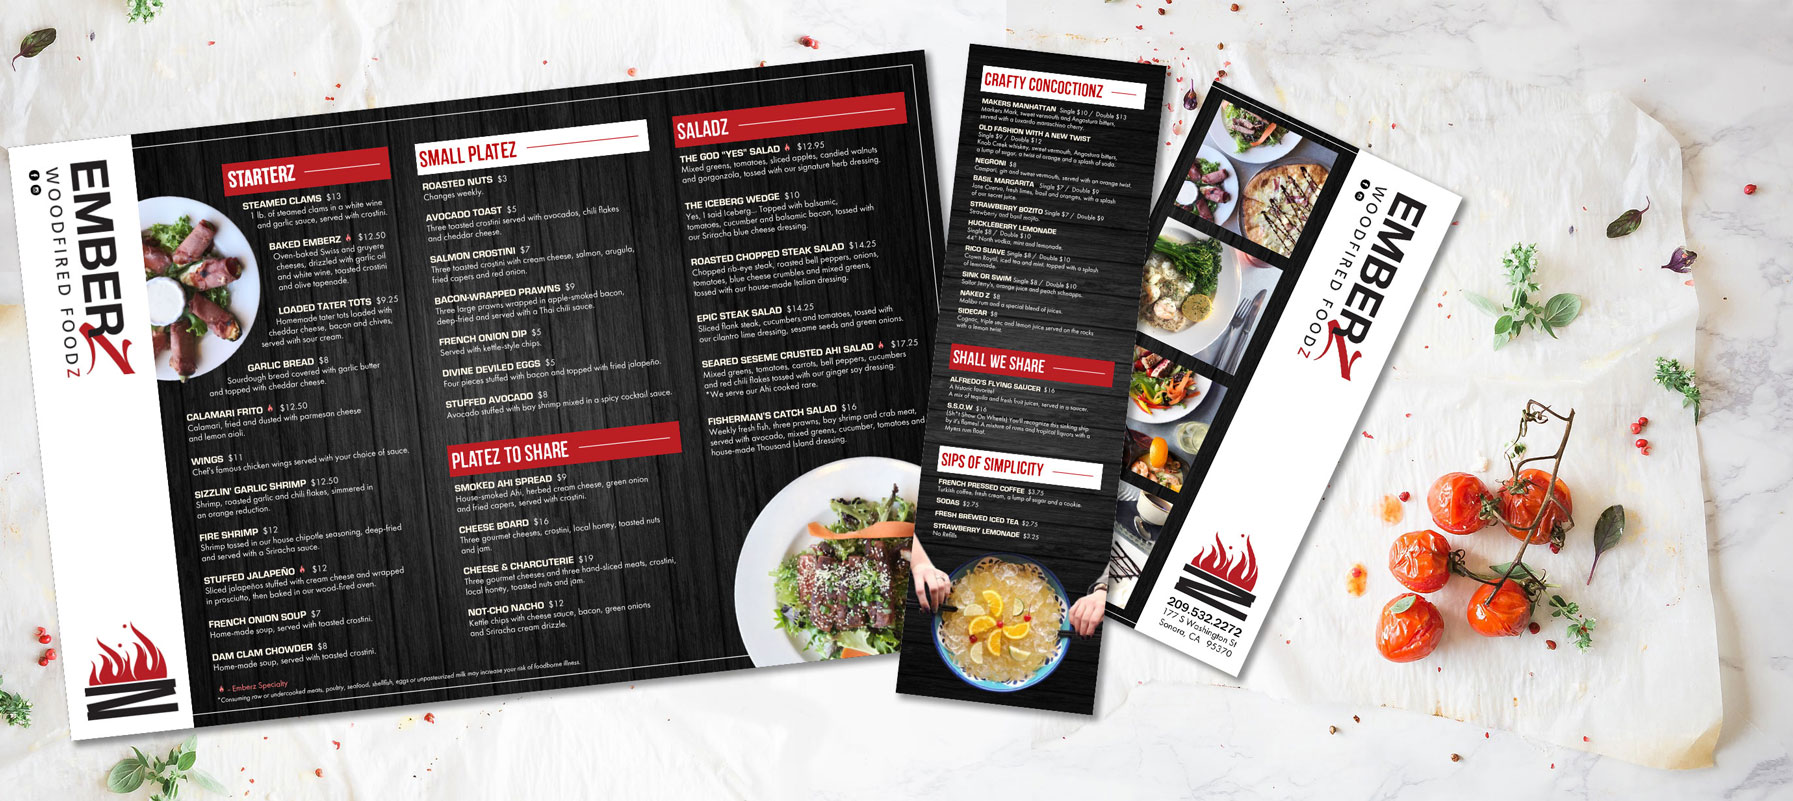 Graphic Design for takeout menus